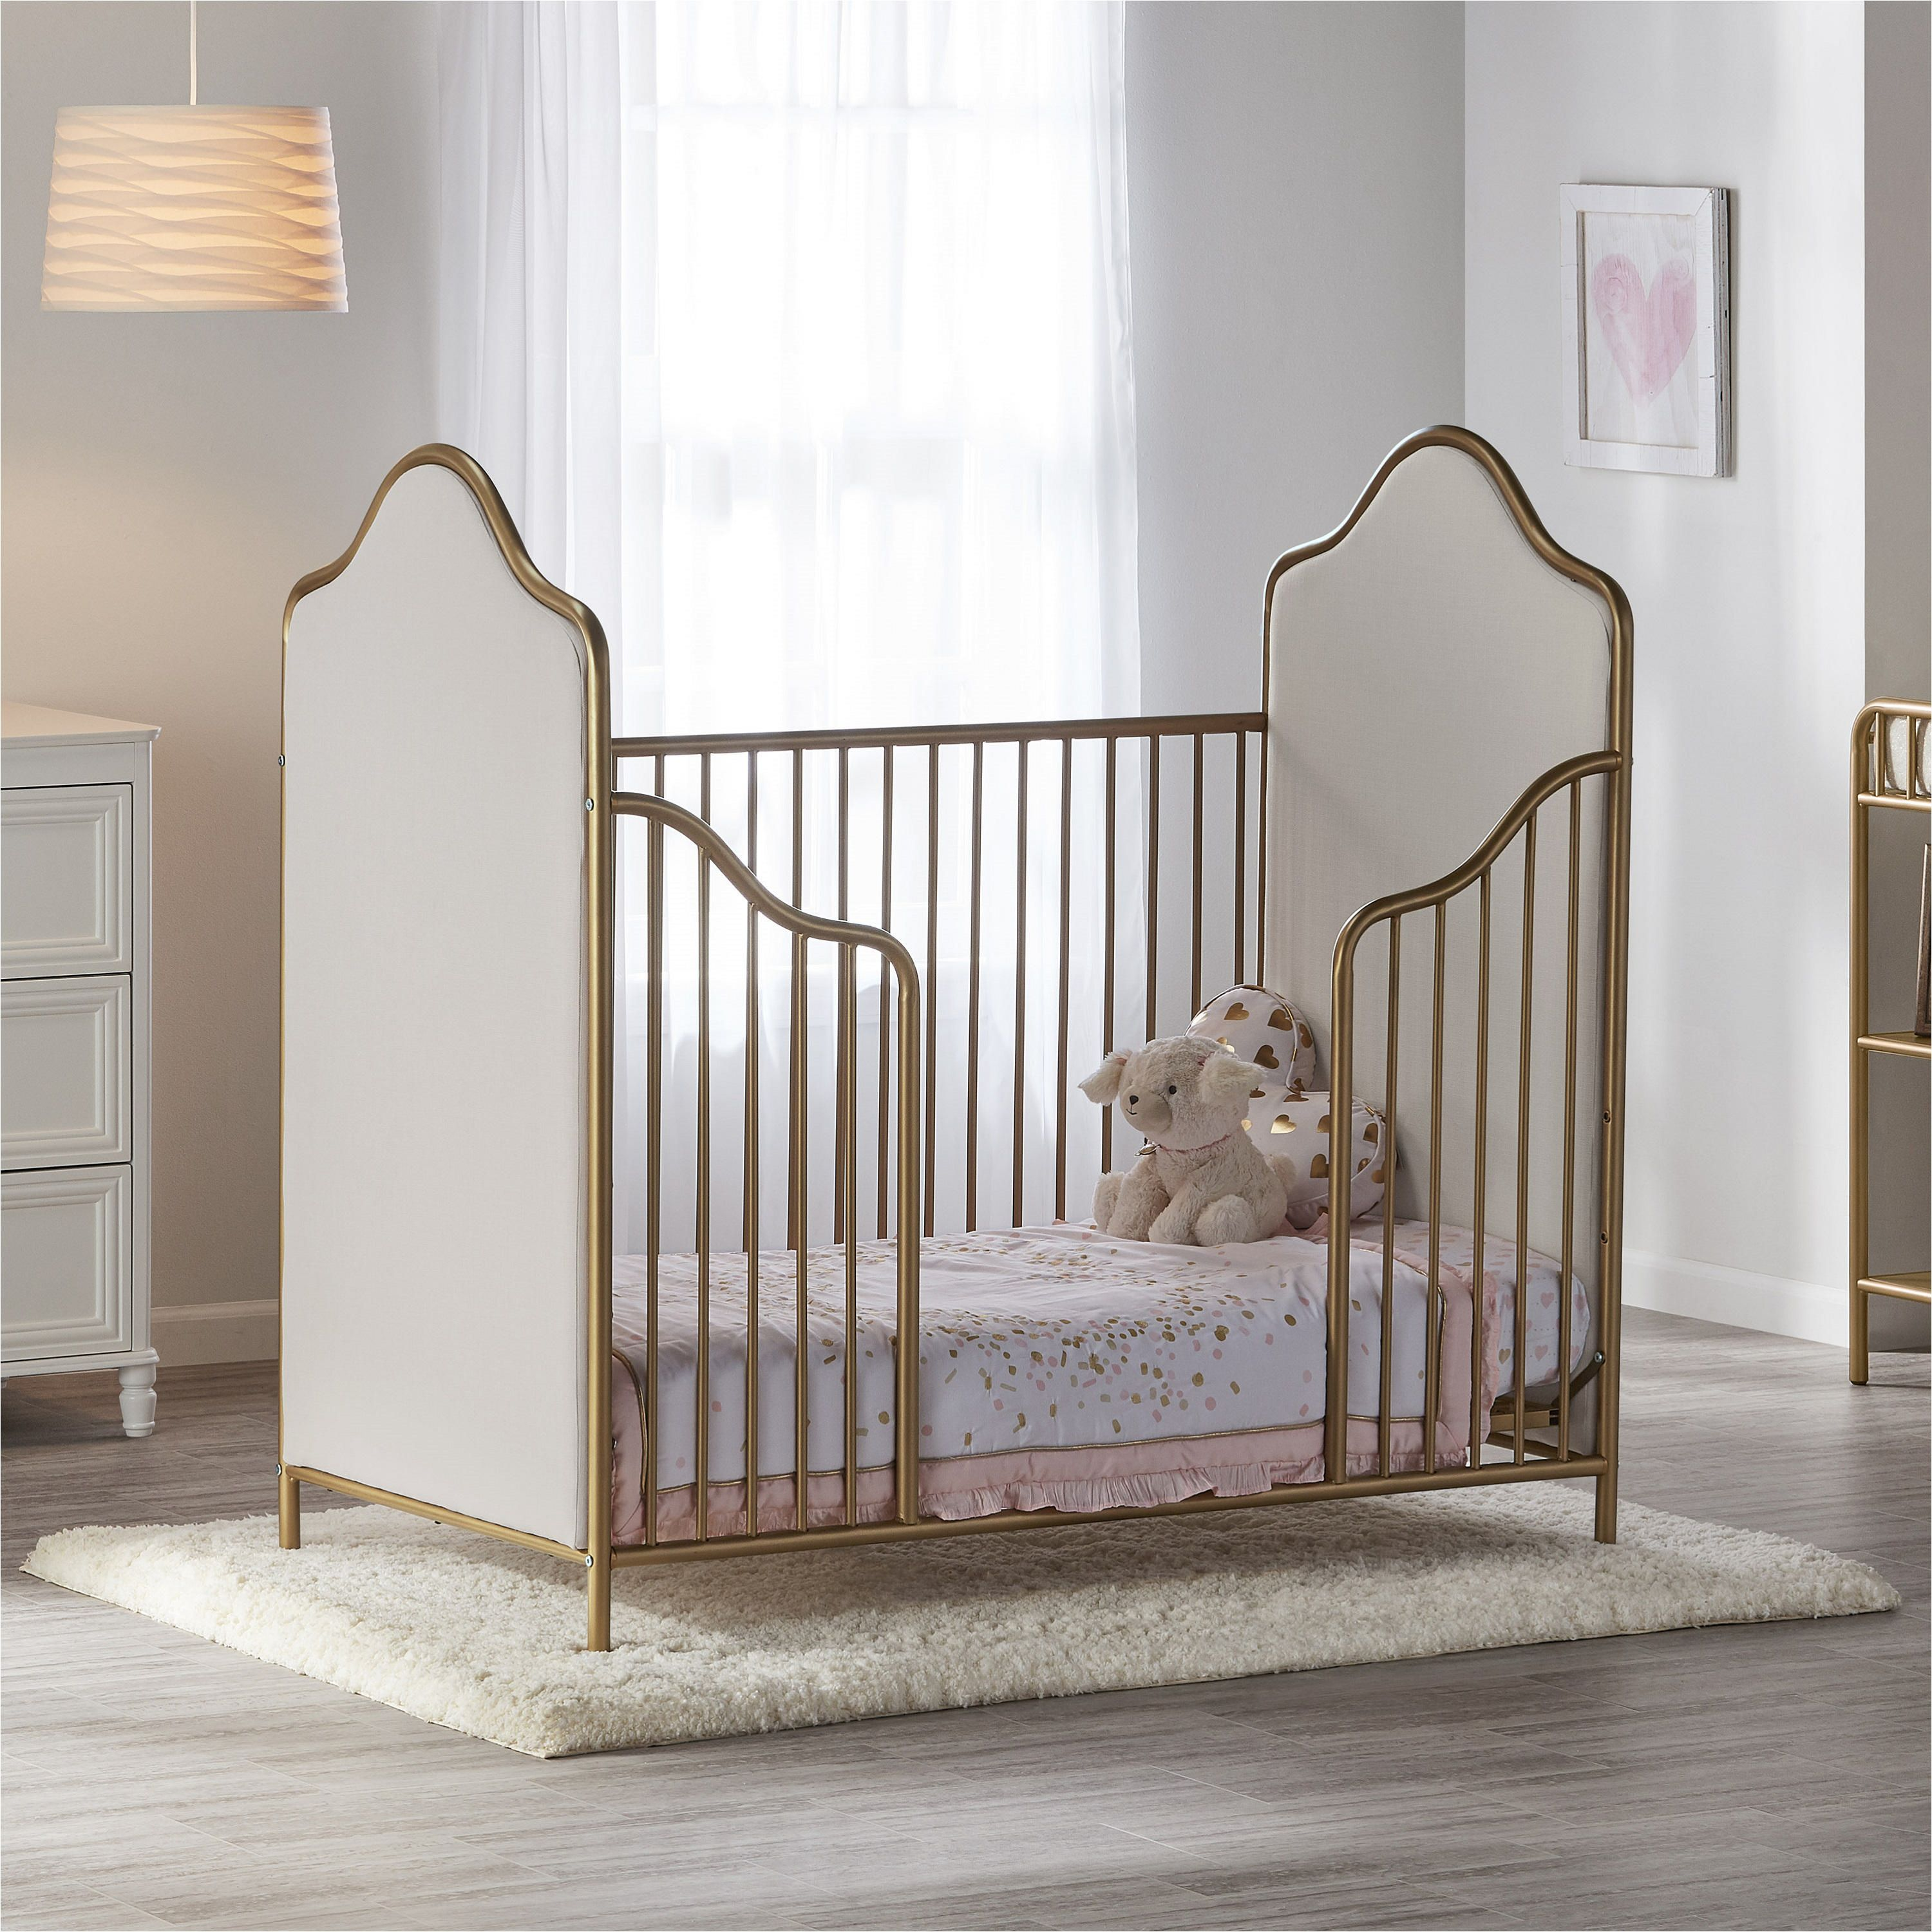 for sale cribs unique crib best and child special baby nurseries on pinterest images corner room